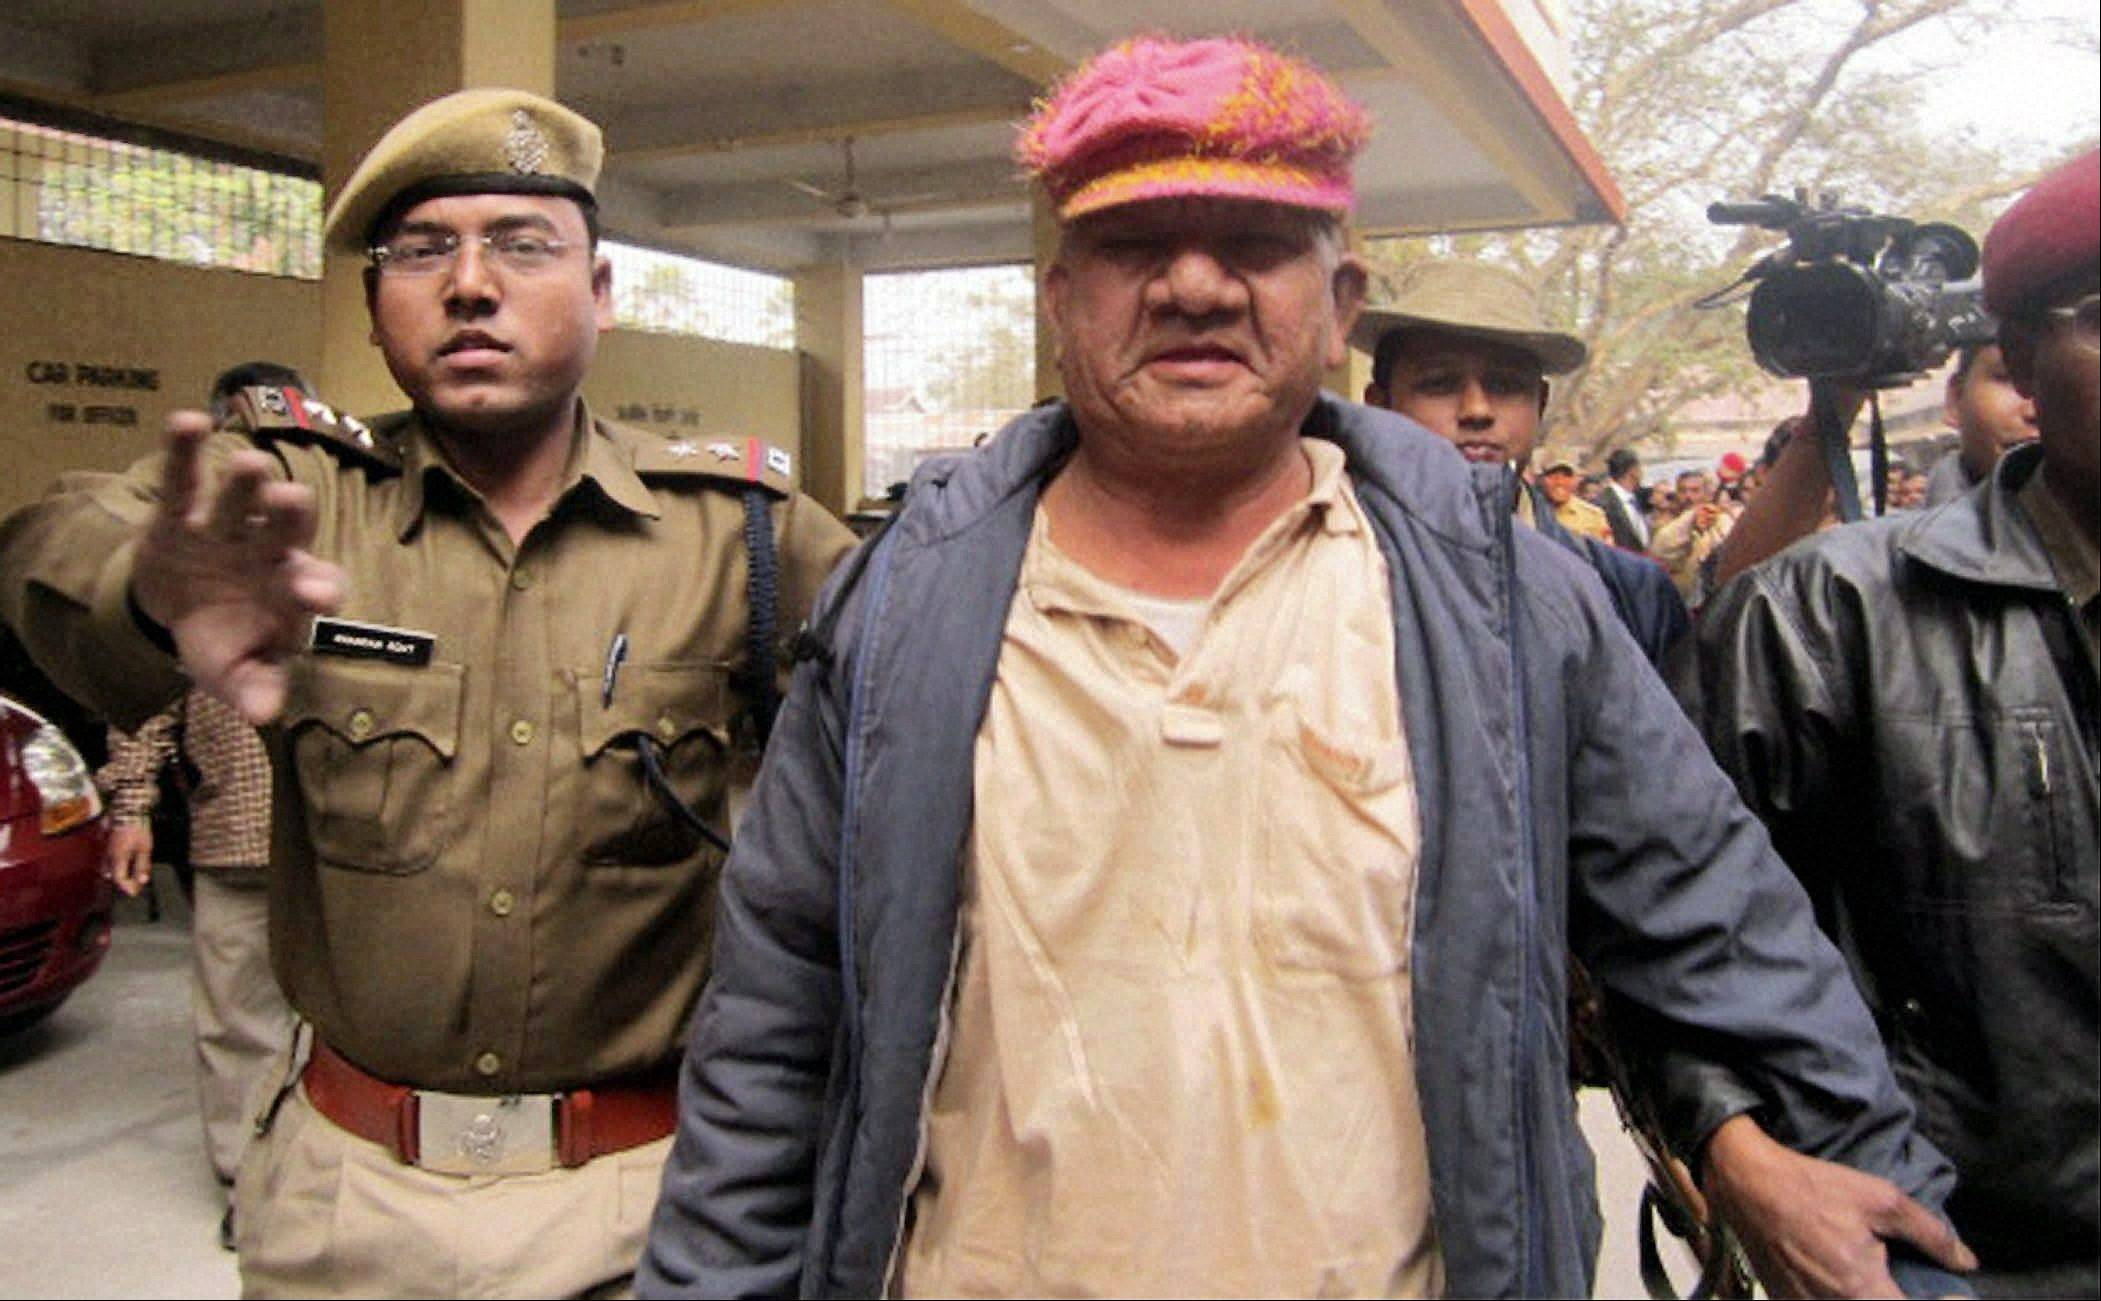 A leader of the ruling Congress party Bikram Singh Brahma, center, is escorted to a court Friday after allegations leading to his arrest on accusations he raped a woman. Footage on Indian television showed the extraordinary scene of local women surrounding Brahma, ripping off his shirt and repeatedly slapping him across the face.